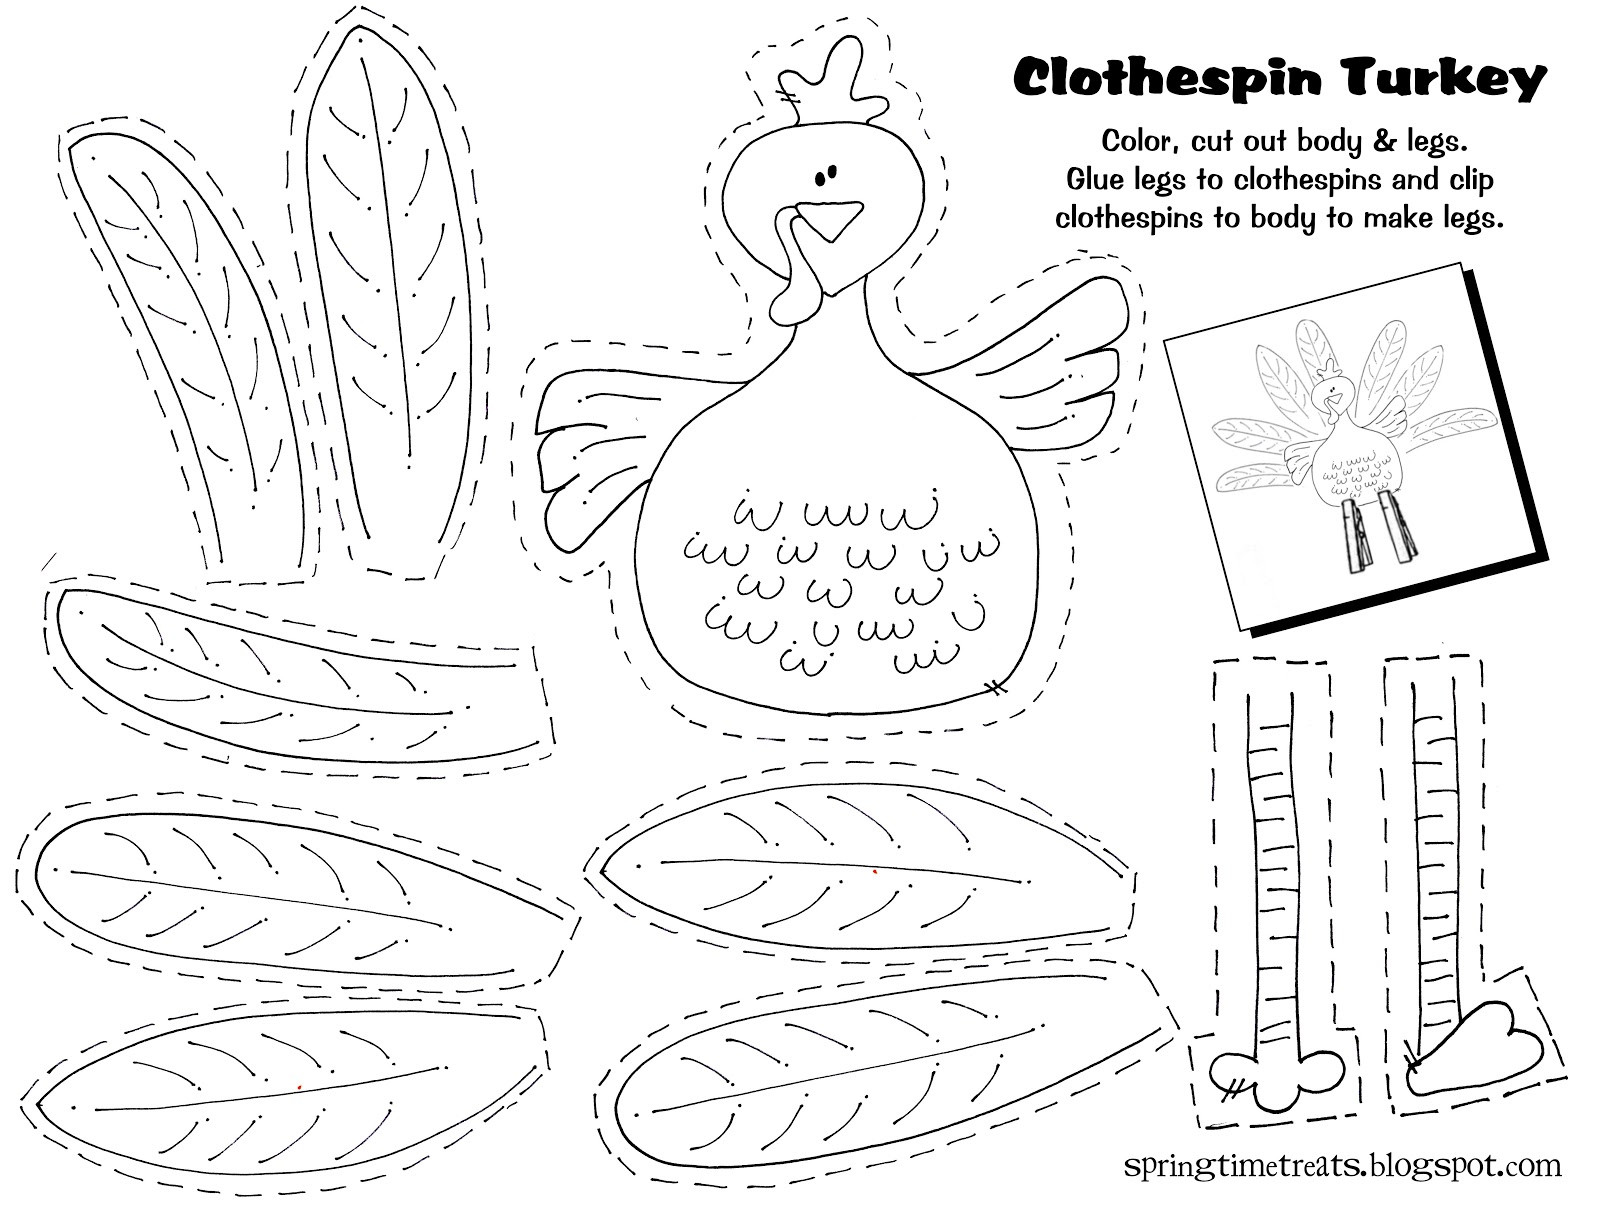 A Turkey For Thanksgiving Activities  Spring Time Treats Clothespin Turkey